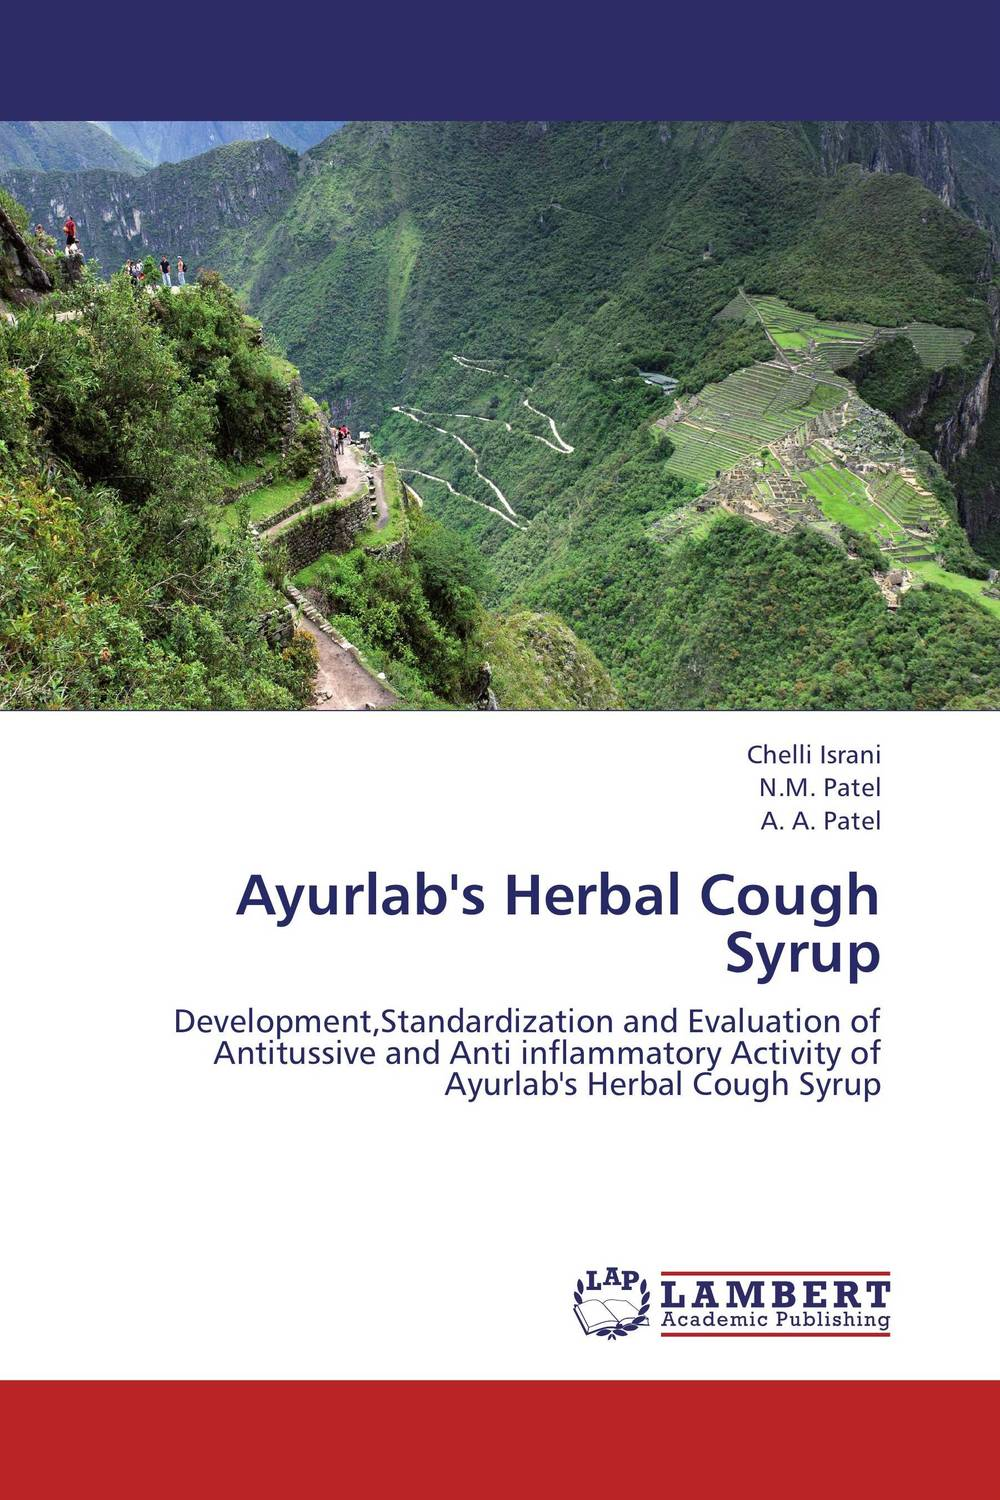 Ayurlab's Herbal Cough Syrup